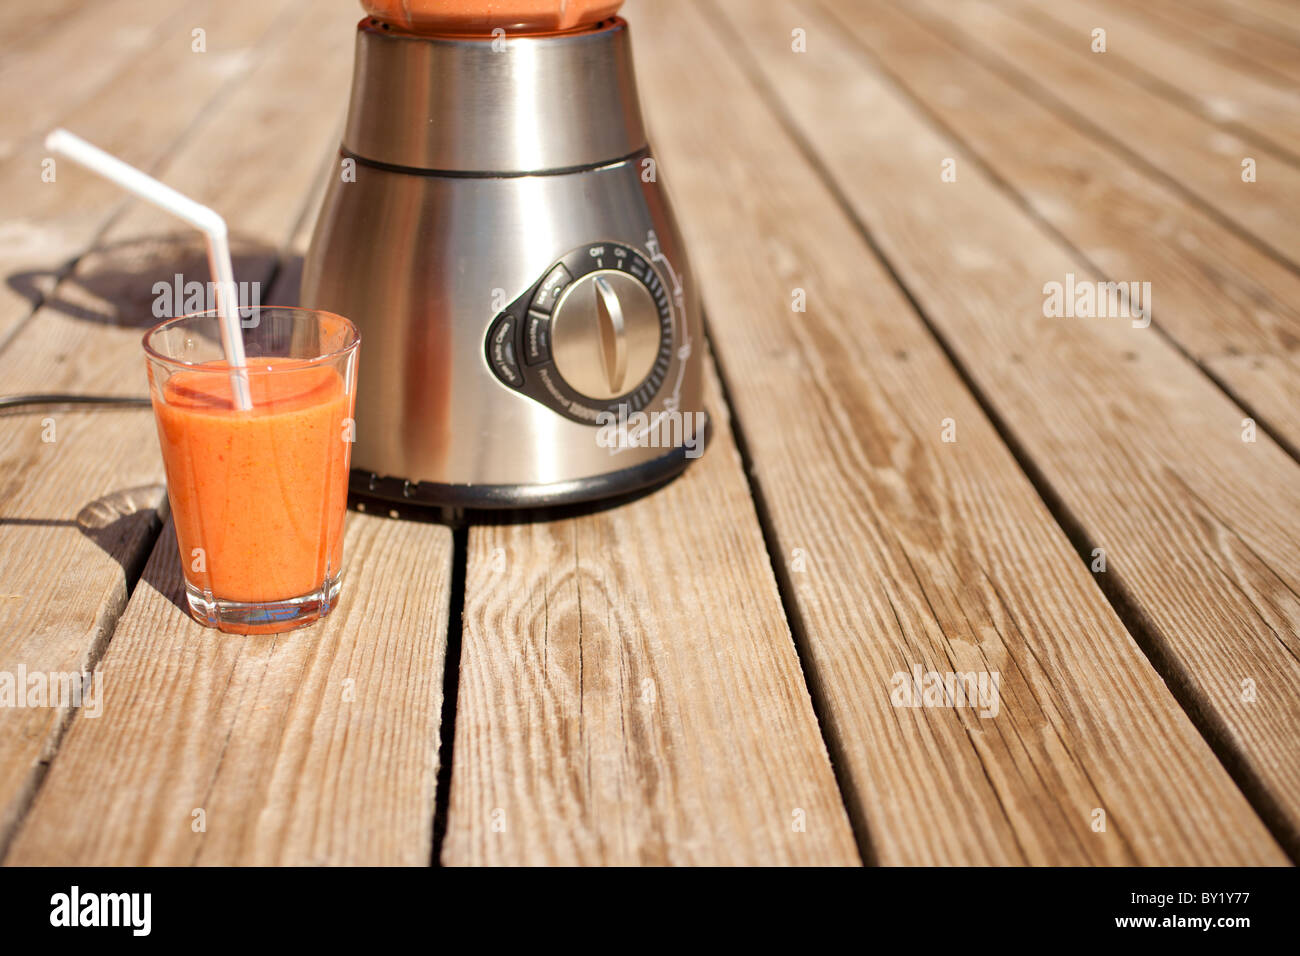 A glass of fruit smoothie with blender in background - Stock Image